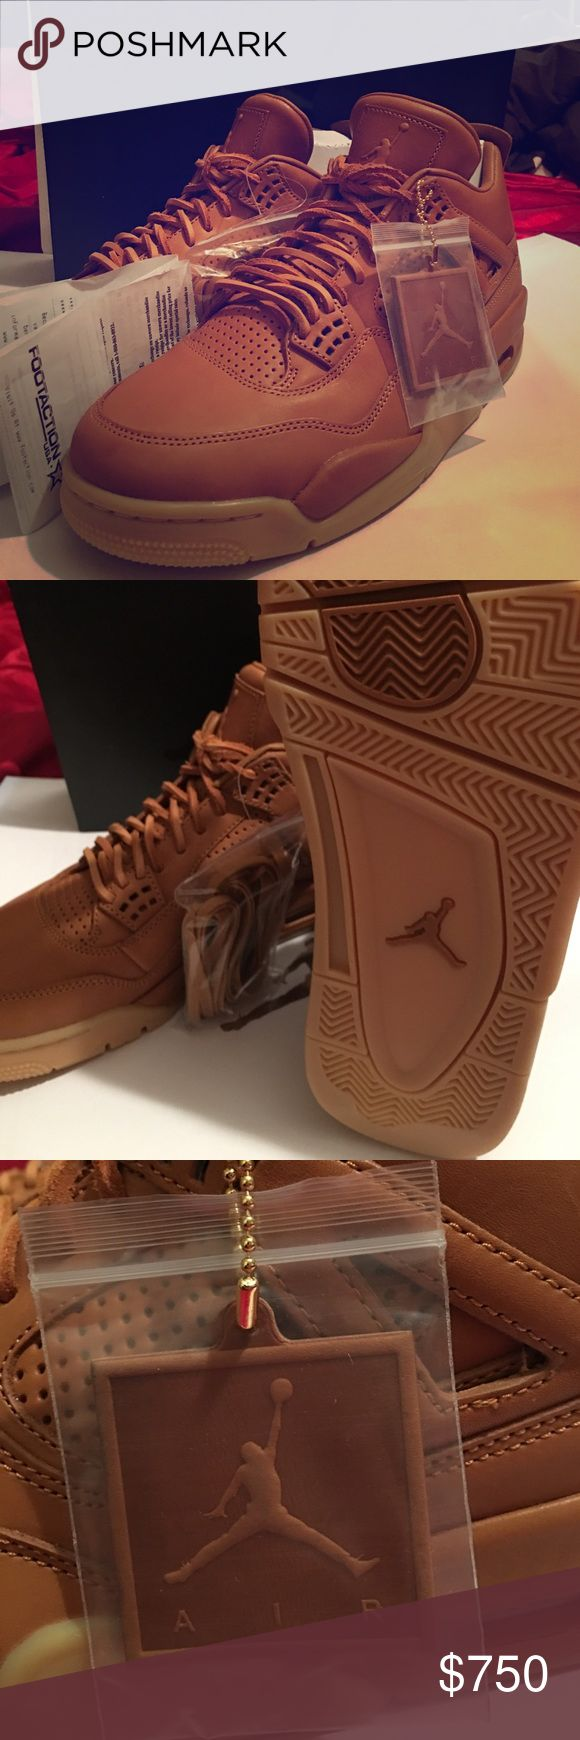 Exclusive Jordan's 4 Selling a brand new pair of Jordan's 4 only few pairs came out in this wheat color hard to find all authentic no A.U or other stuff comes with a receipt Jordan Shoes Sneakers